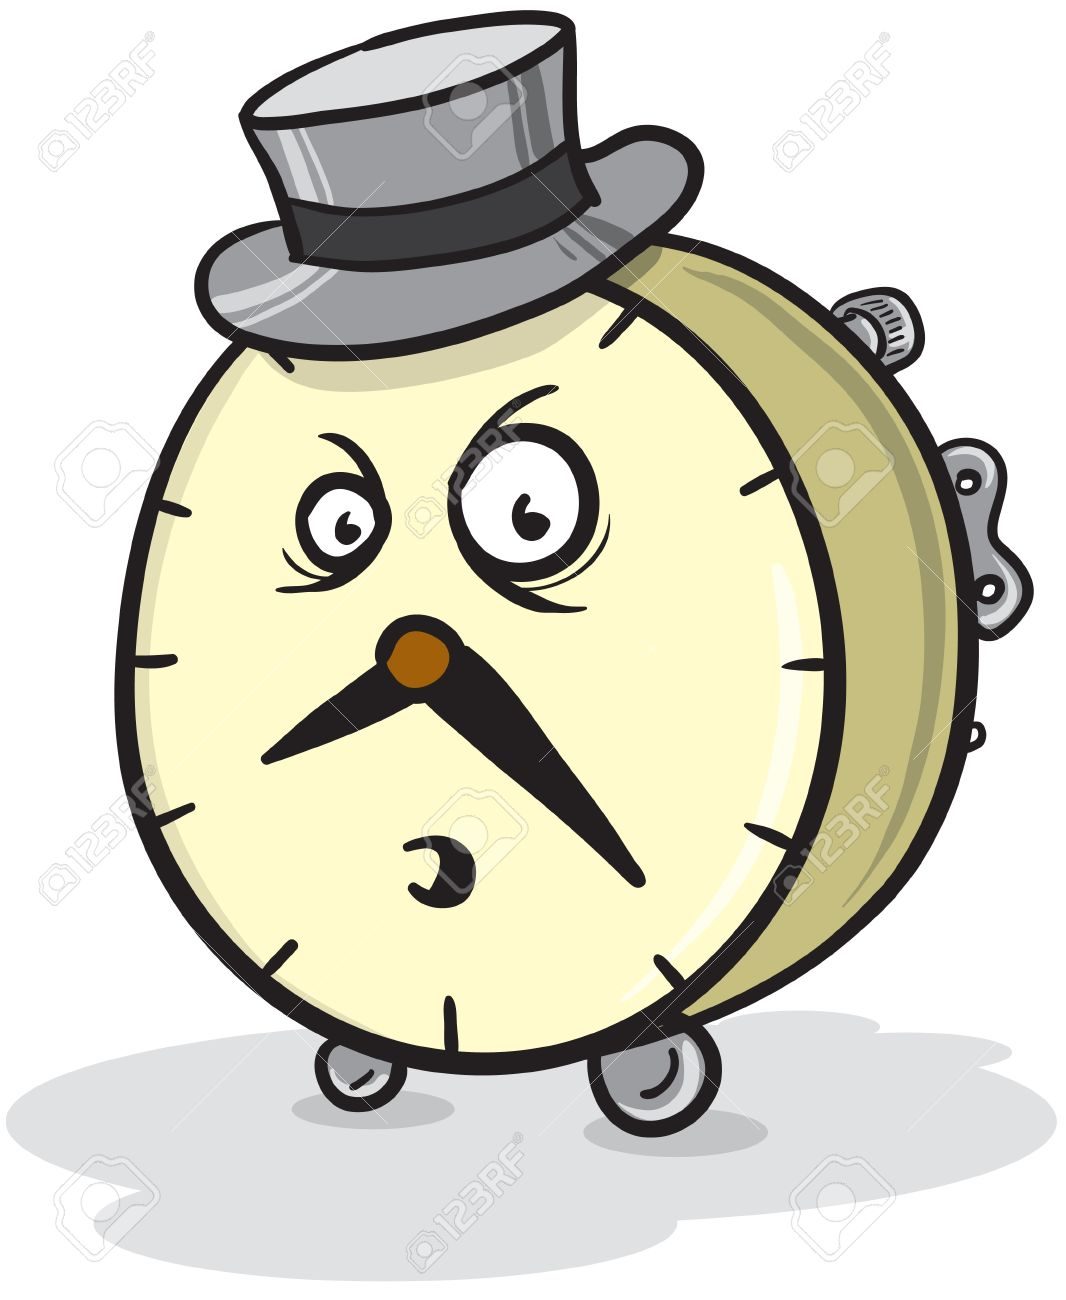 Cartoon Illustration Of A Male Clock With A Hat And An Angry